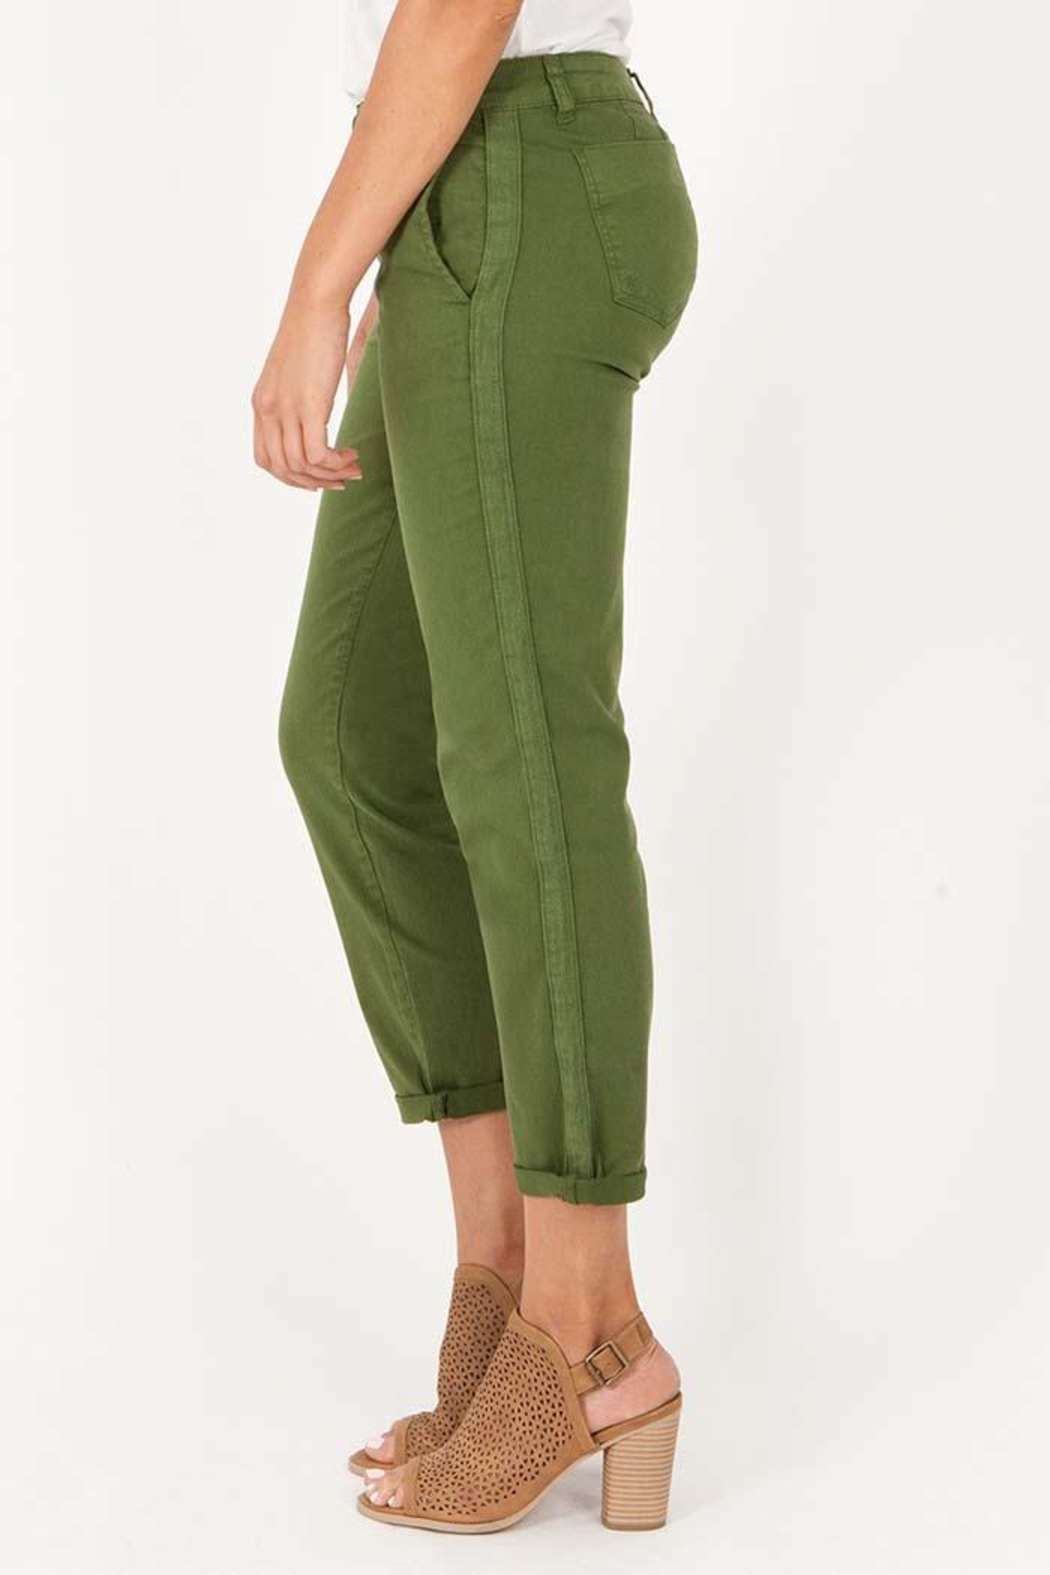 Kut from the Kloth Julianne Crop Trouser - Front Full Image